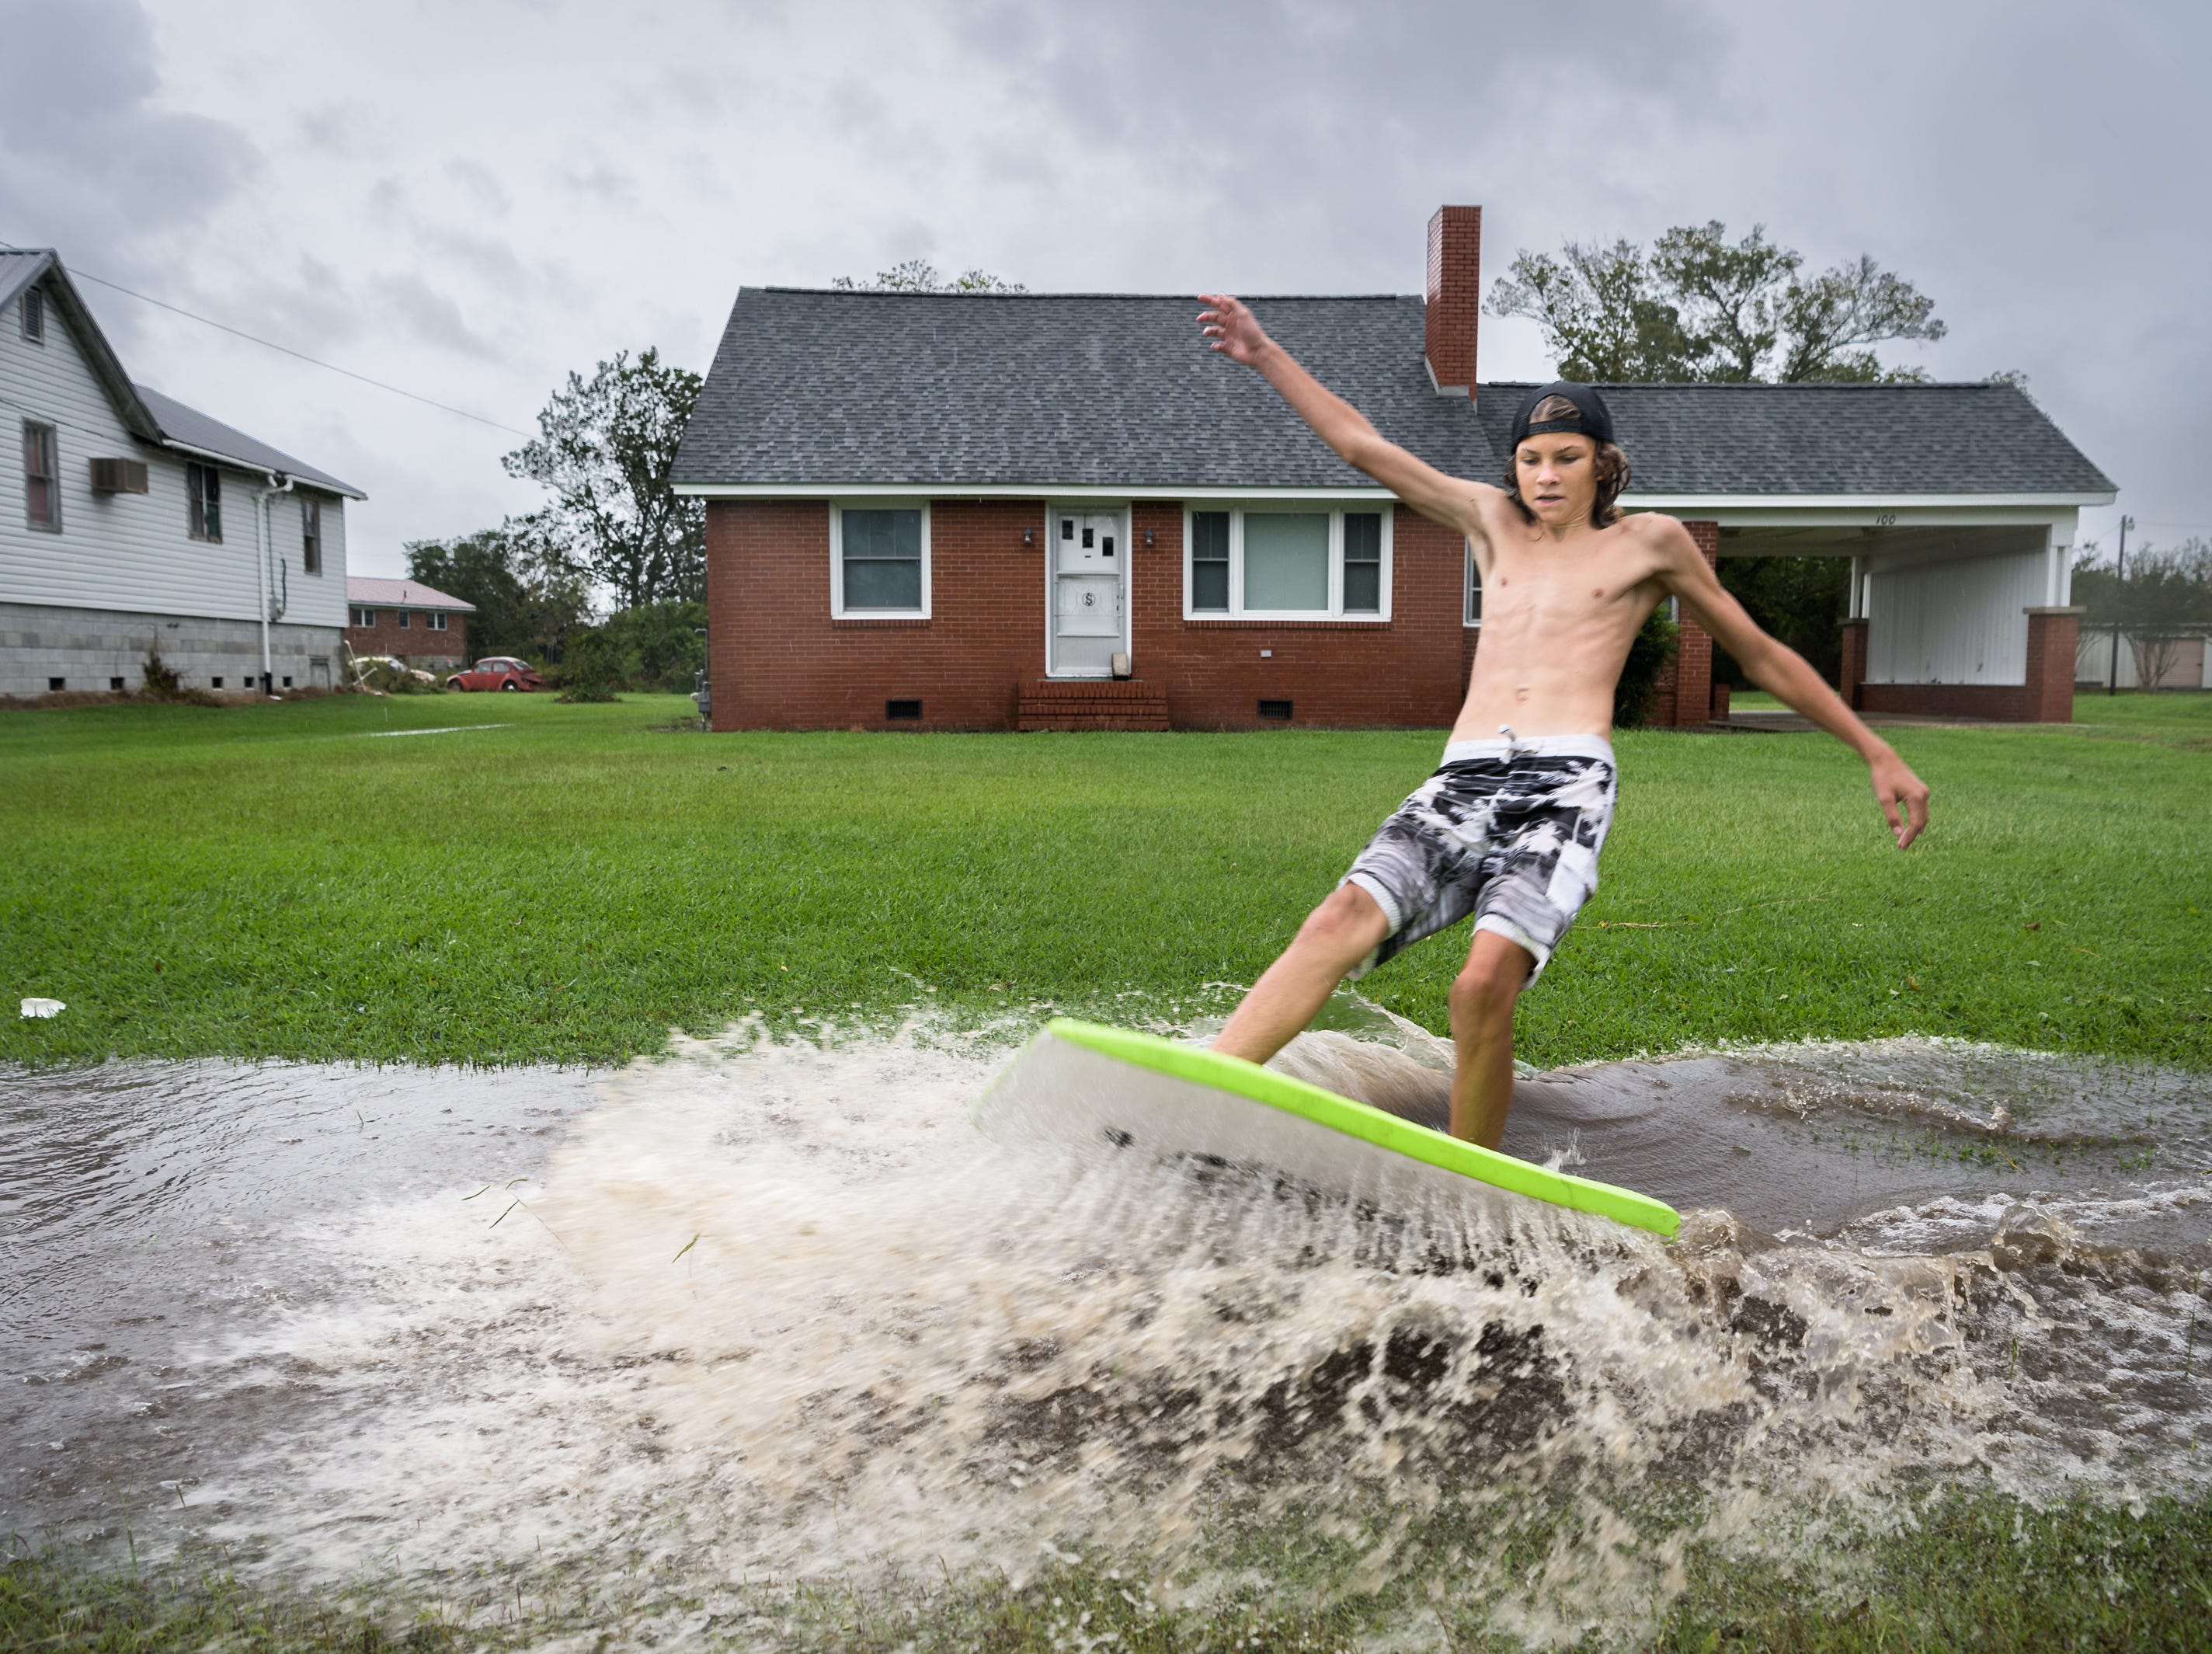 Deacon Etheridge, 14, surfs on a large puddle on Main Street in Swan Quarter, N.C Sept. 14, 2018, after Hurricane Florence made landfall.